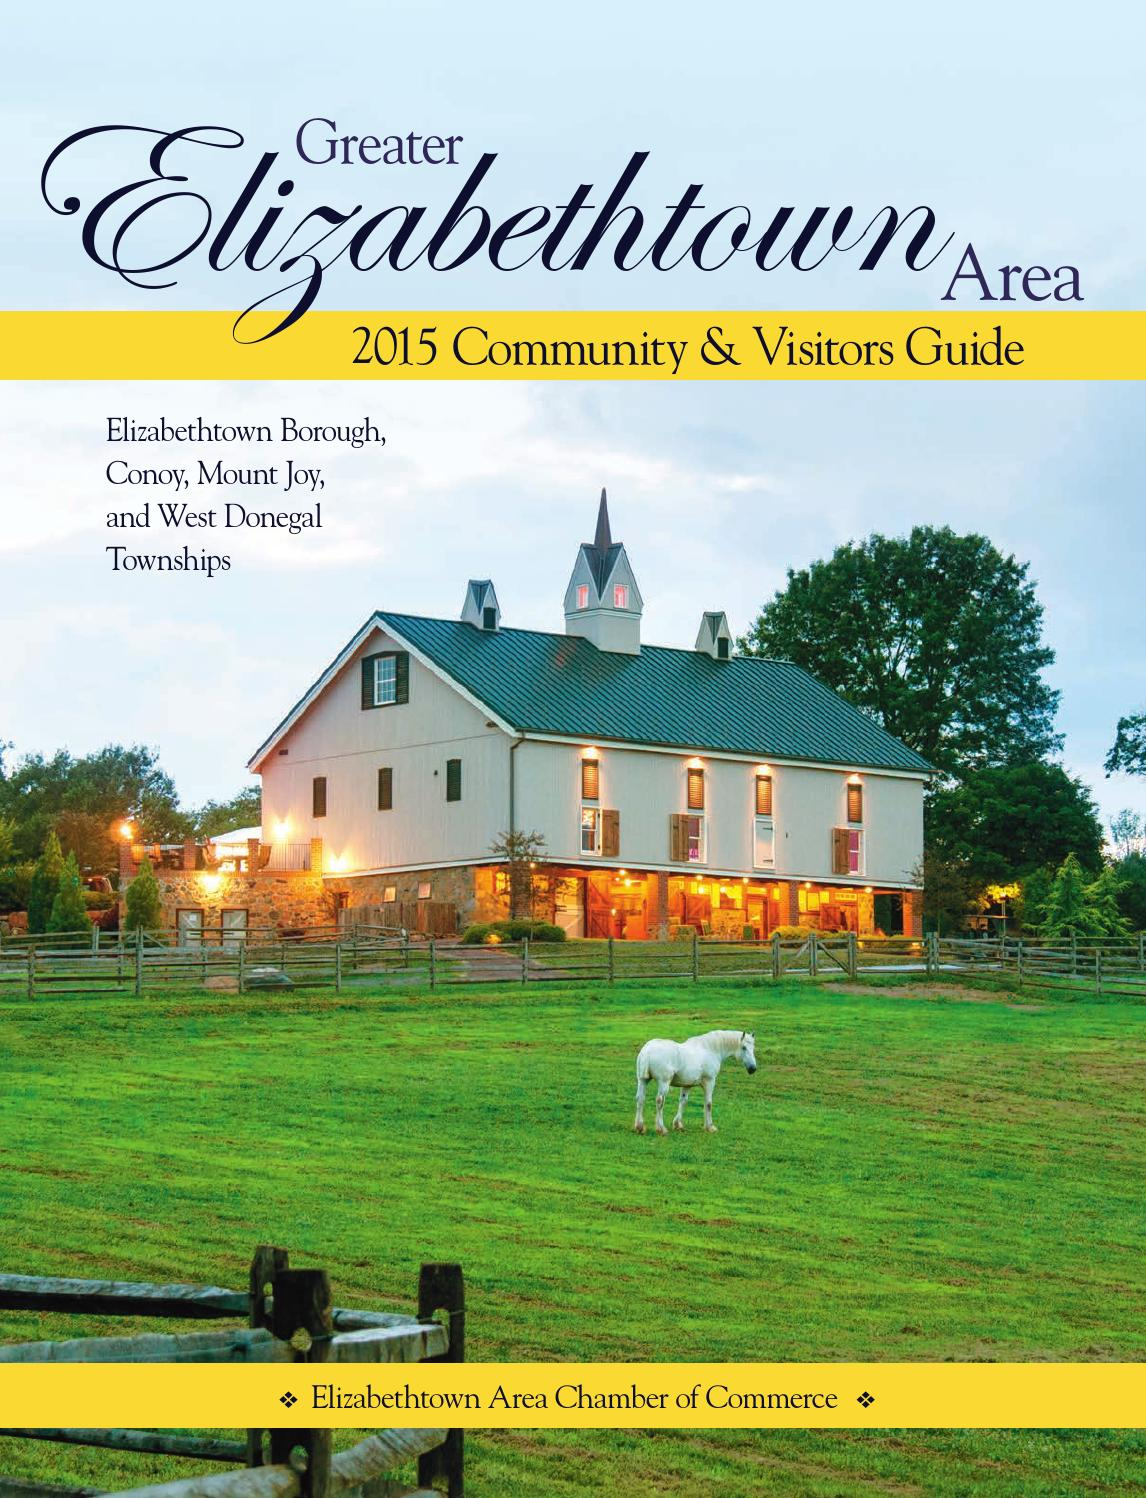 greater elizabethtown area community ors guide by greater elizabethtown area 2016 community ors guide by engle printing publishing co inc issuu